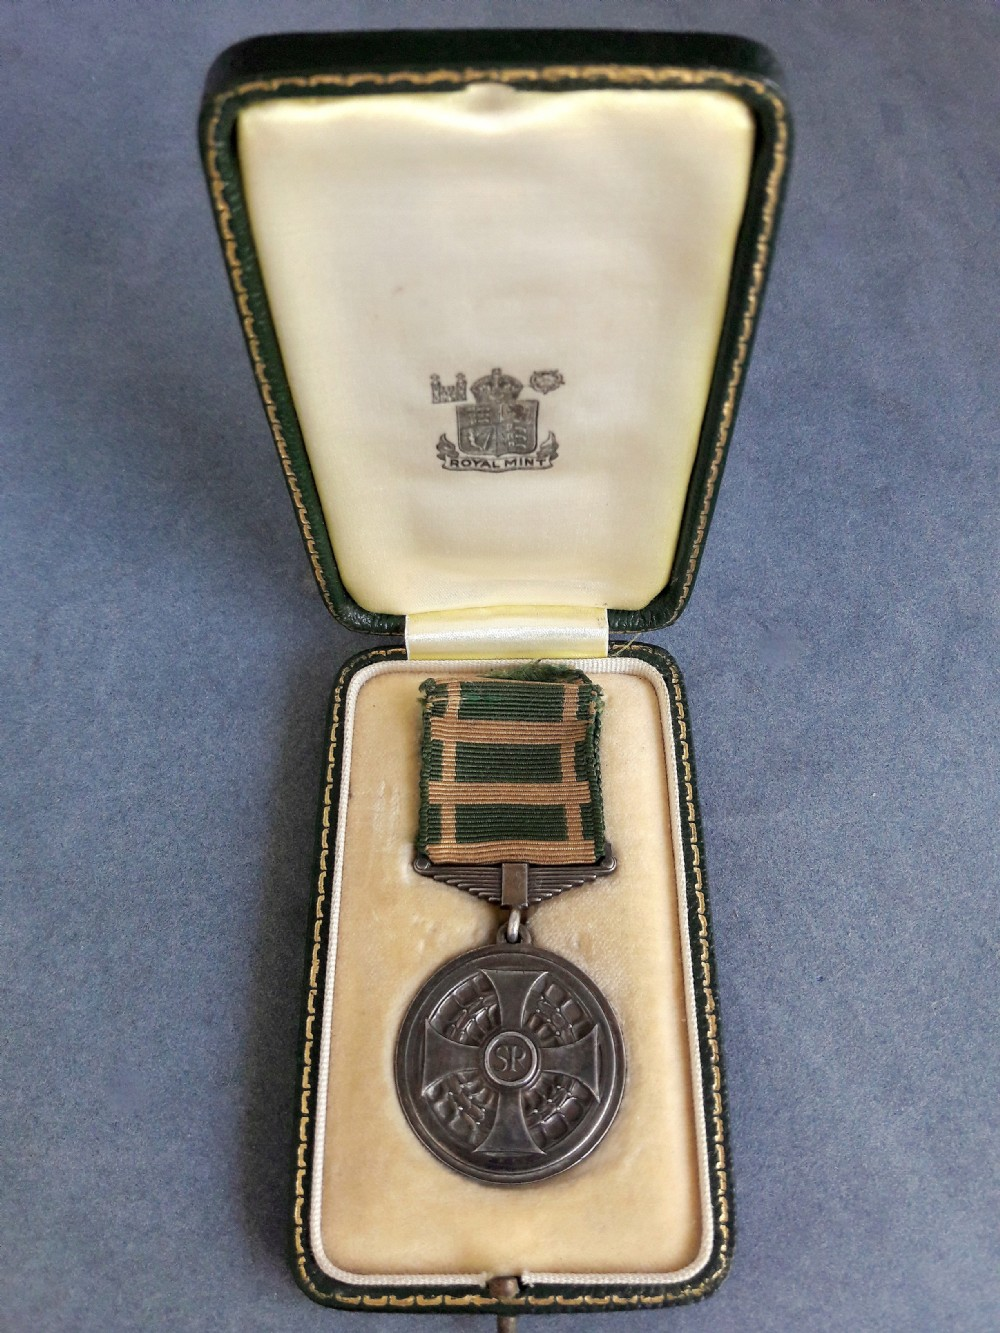 southern railway medal